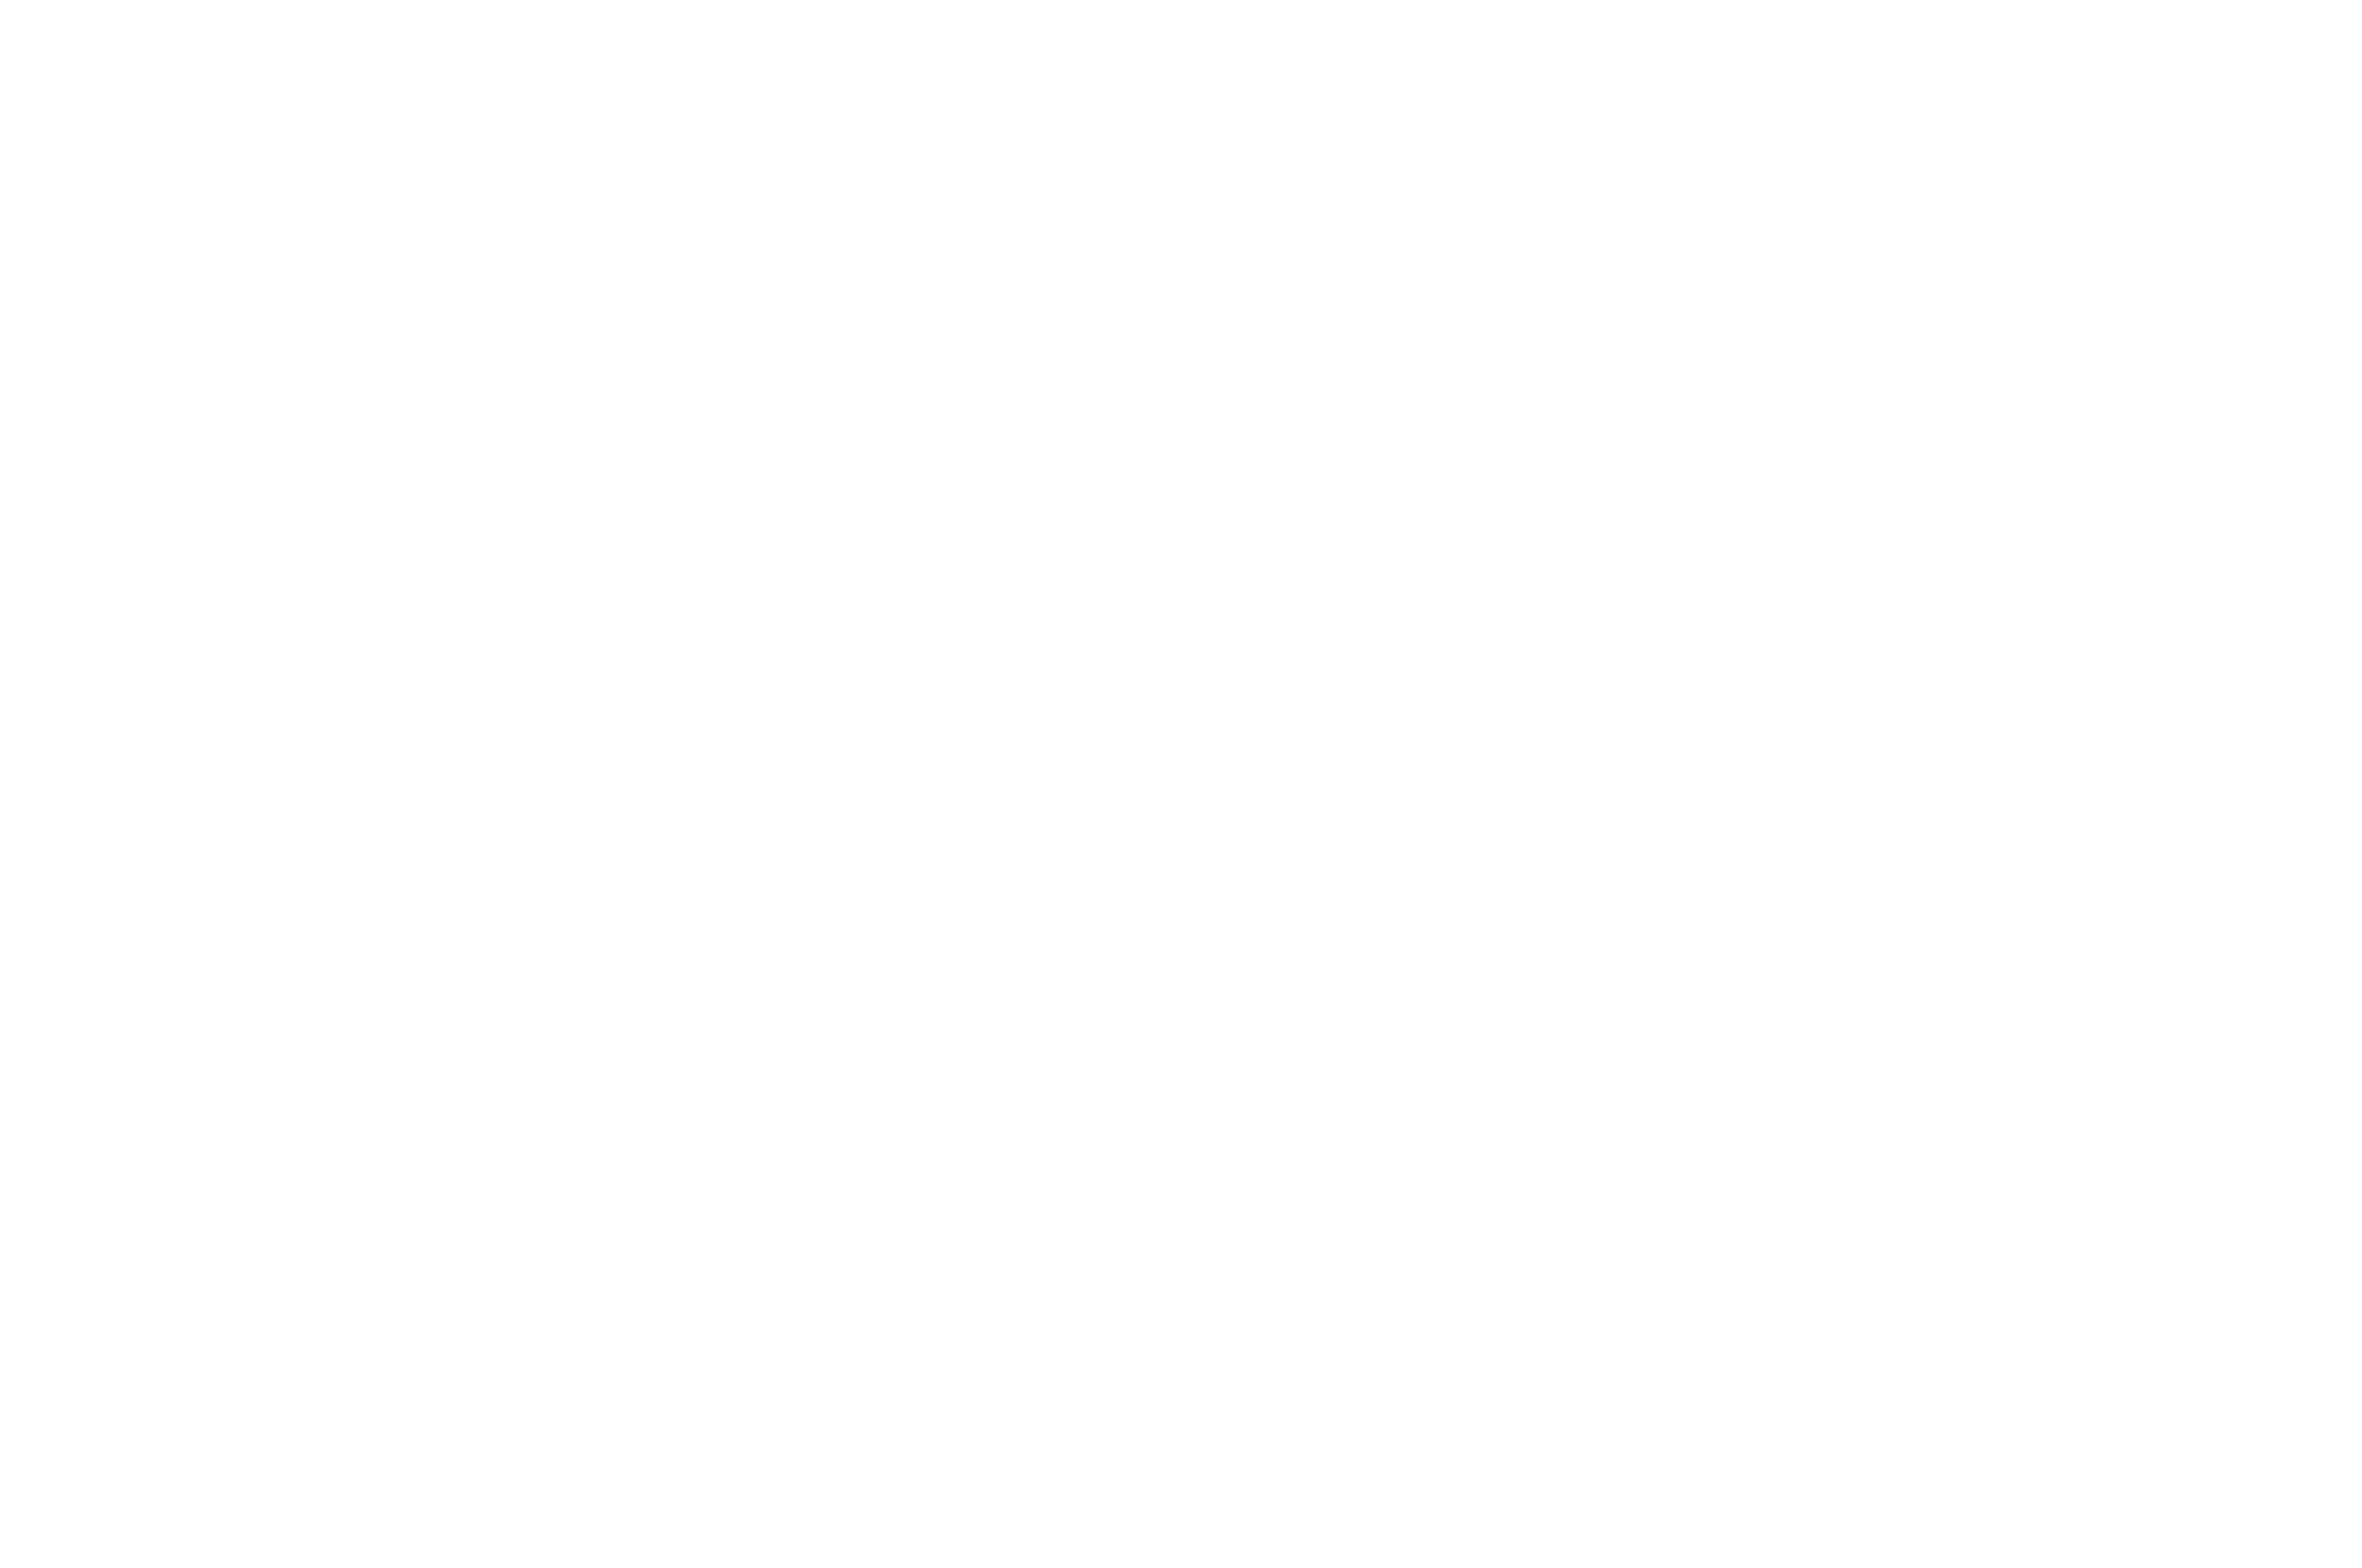 OFFICIALSELECTION GrindhouseIVZoetrope Aug2019